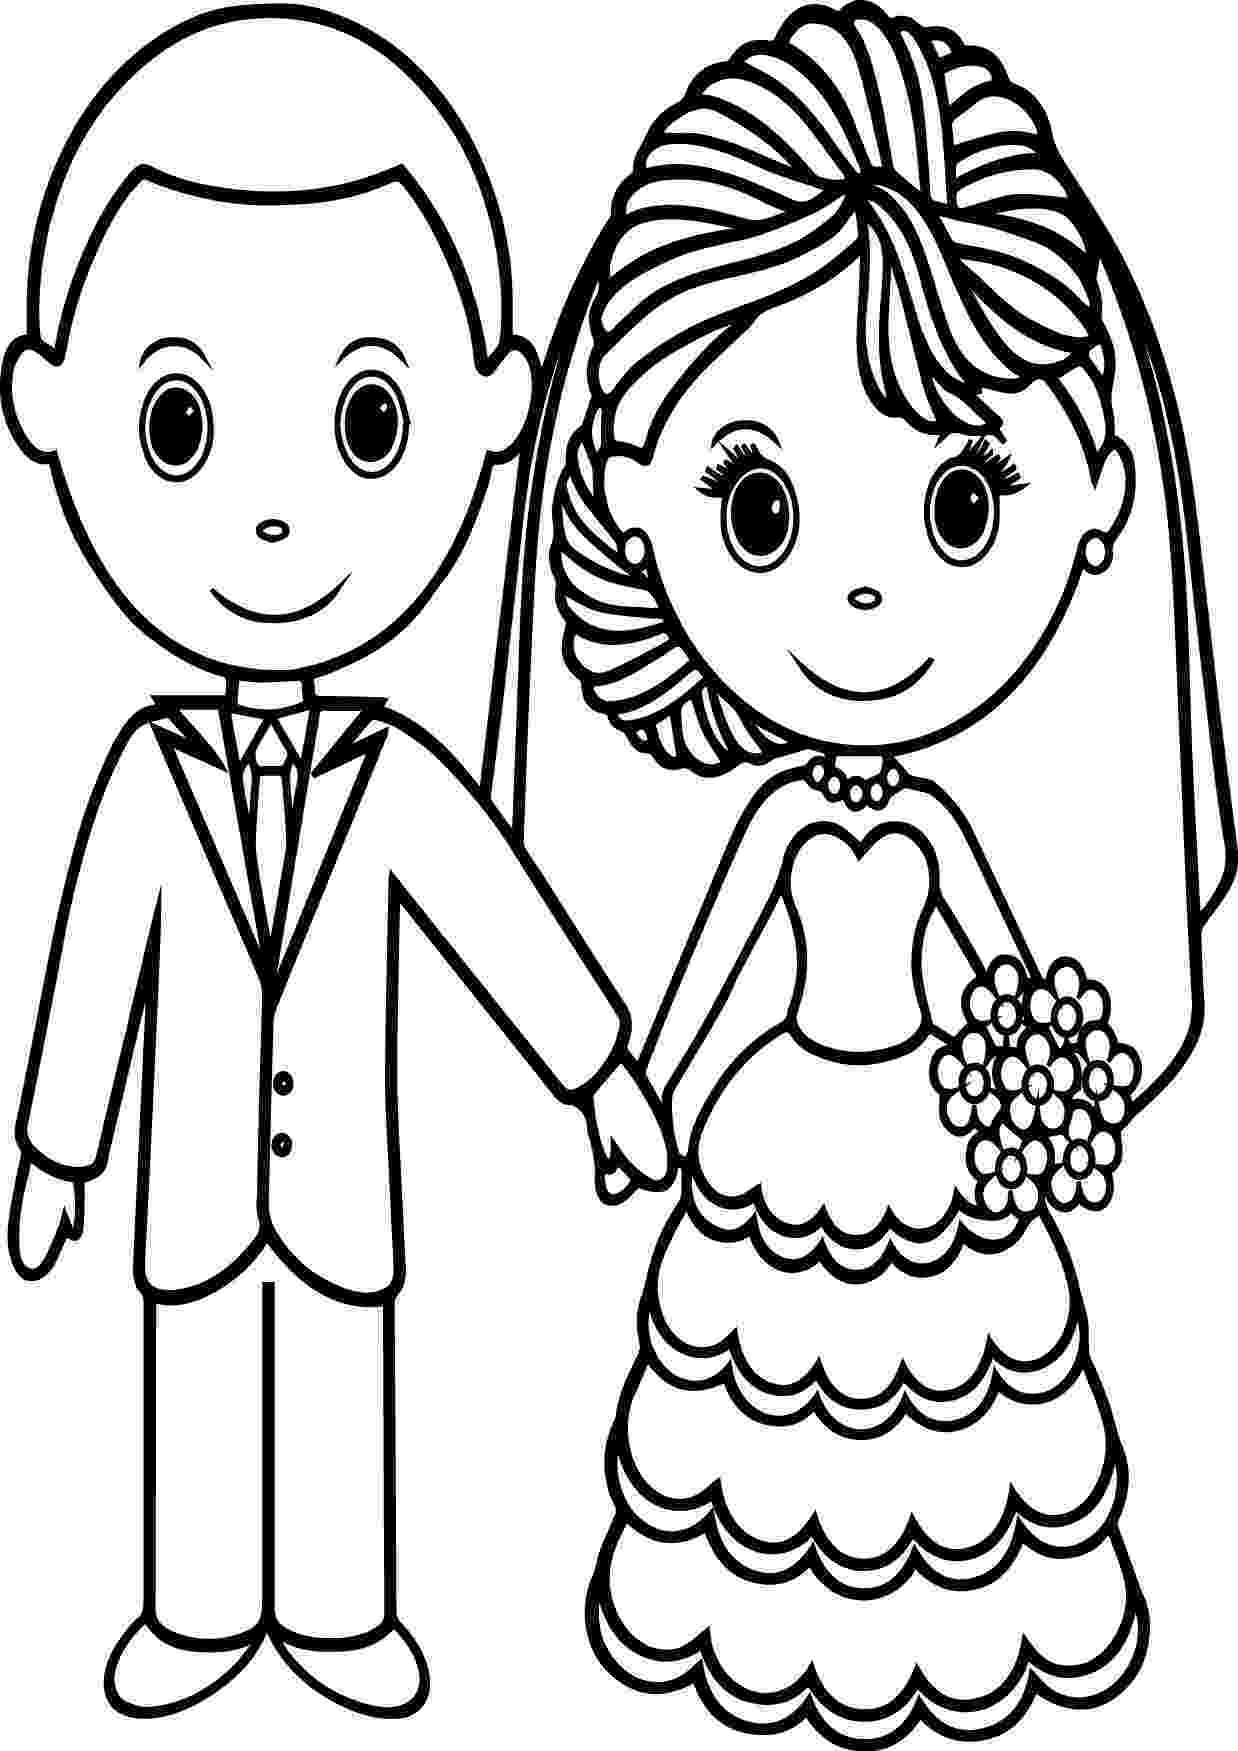 printable wedding coloring pages wedding coloring pages best coloring pages for kids printable wedding coloring pages